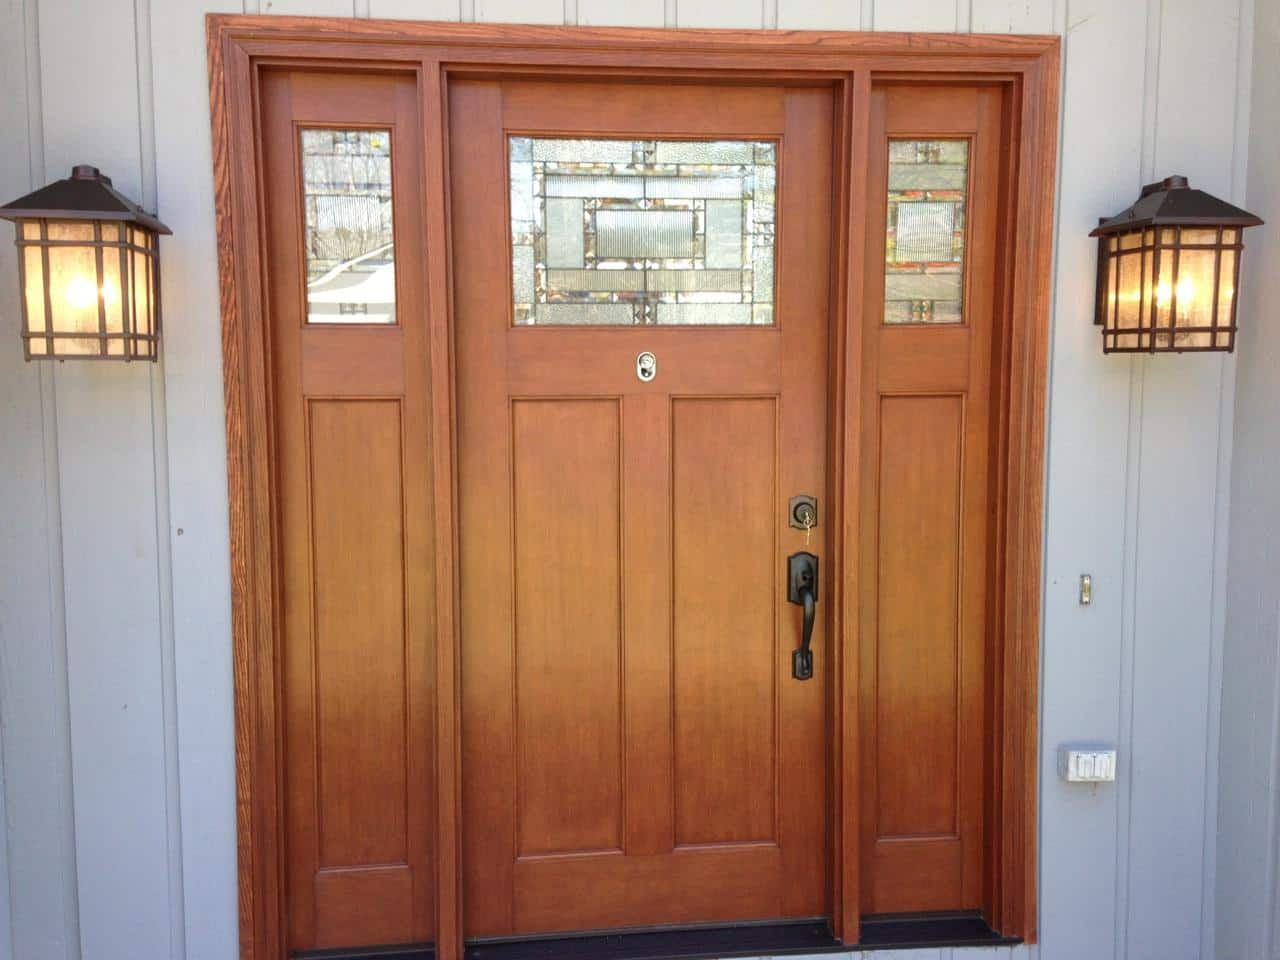 960 #7F3E26 Albany Door Company Inc. Fiberglass Doors picture/photo Fibreglass Exterior Doors 41191280